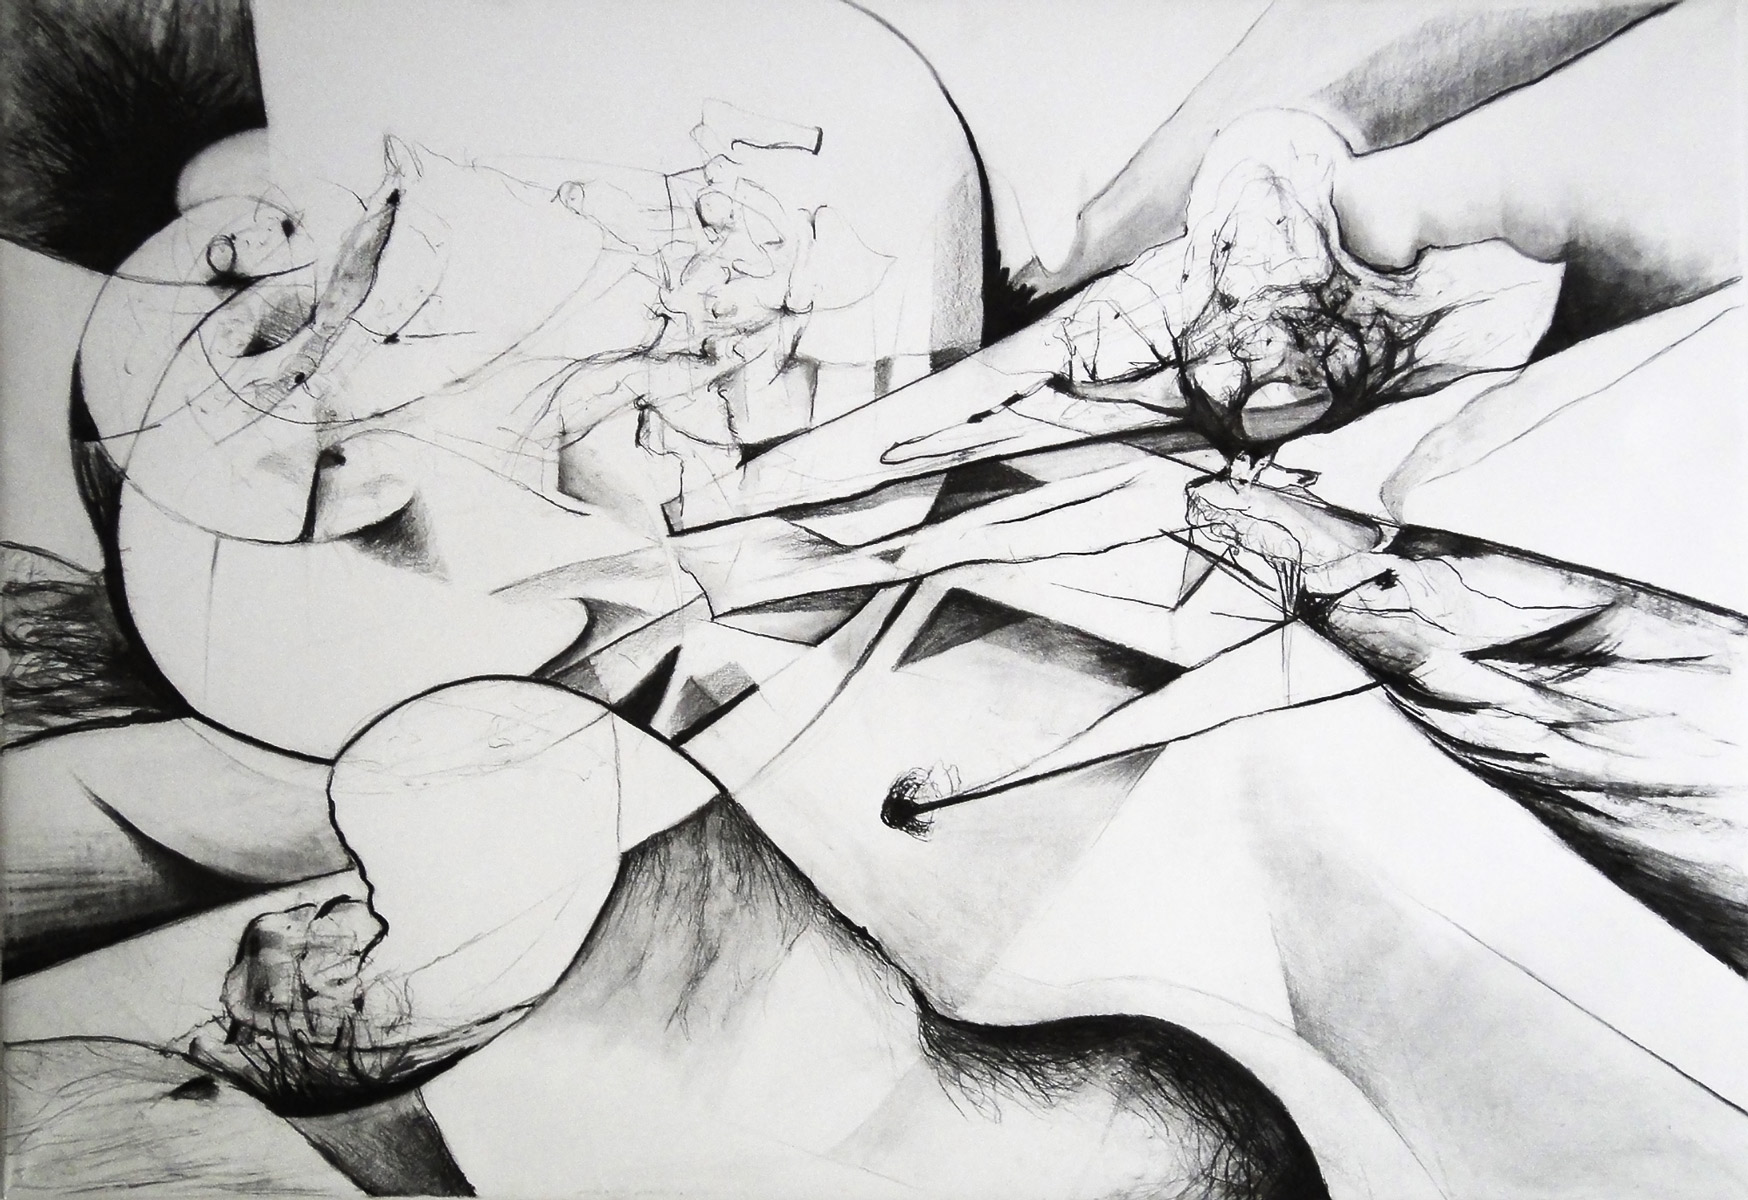 Charcoal on paper, 110x160cm, 2012